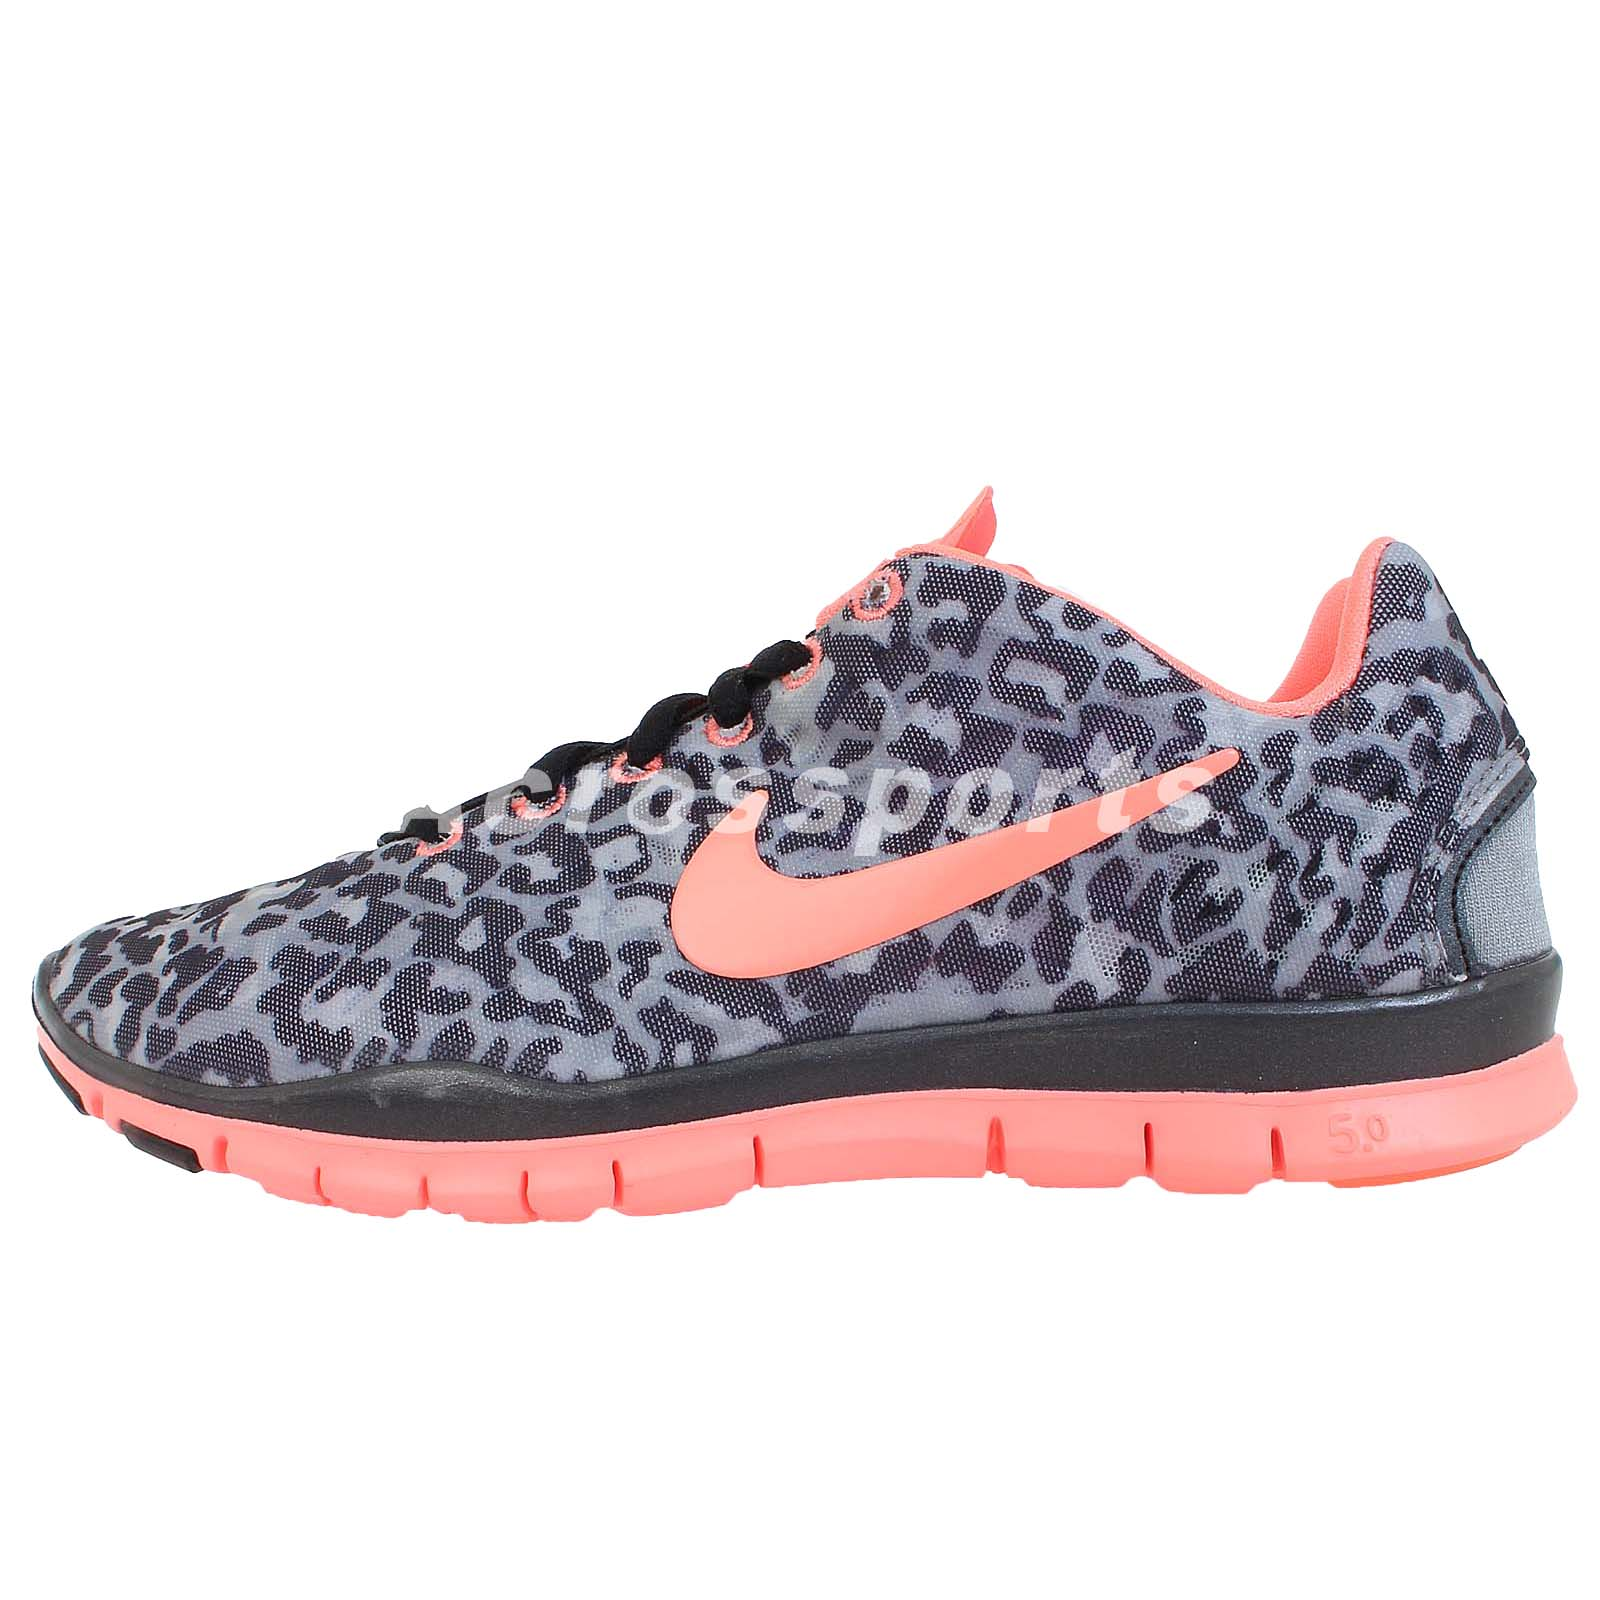 Nike wmns free tr fit 3 prt leopard print 2013 womens cross training